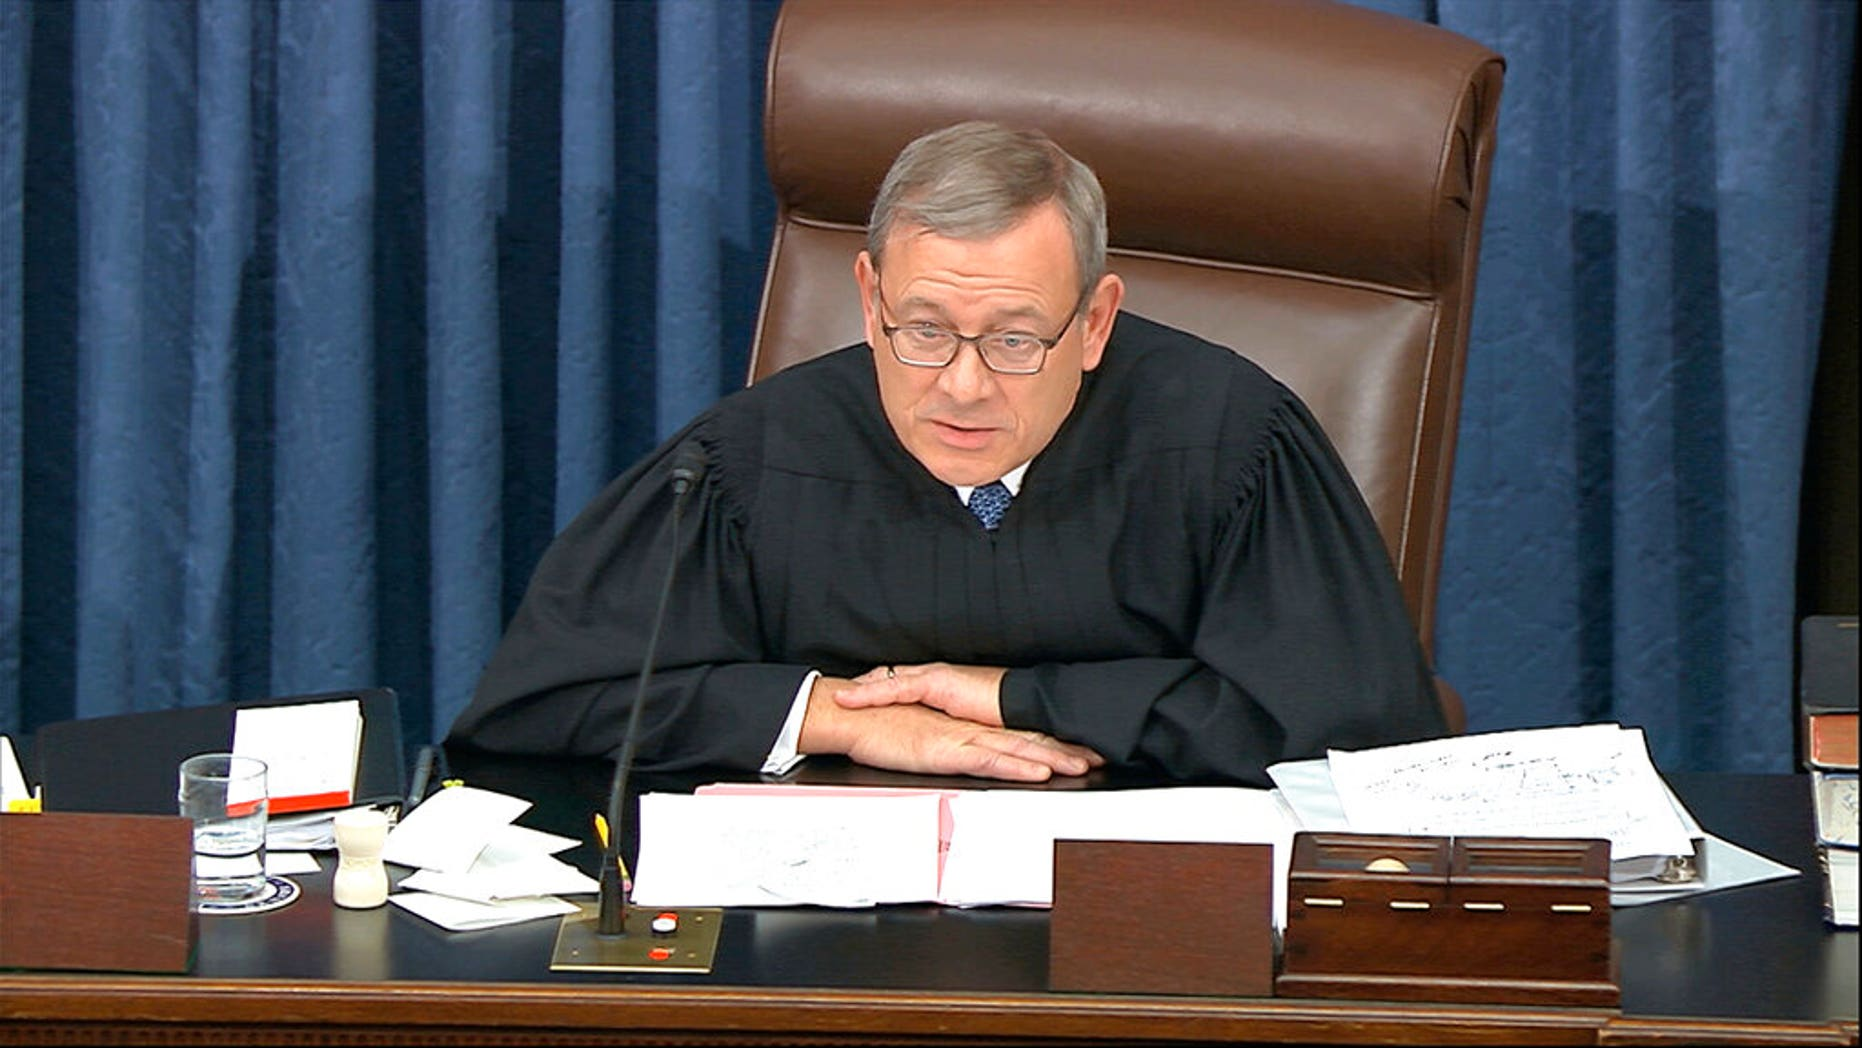 Supreme Court Chief Justice John Roberts admonishes the impeachment managers and president's counsel in equal terms as he speaks during the impeachment trial against President Donald Trump in the Senate. (Senate Television via AP)